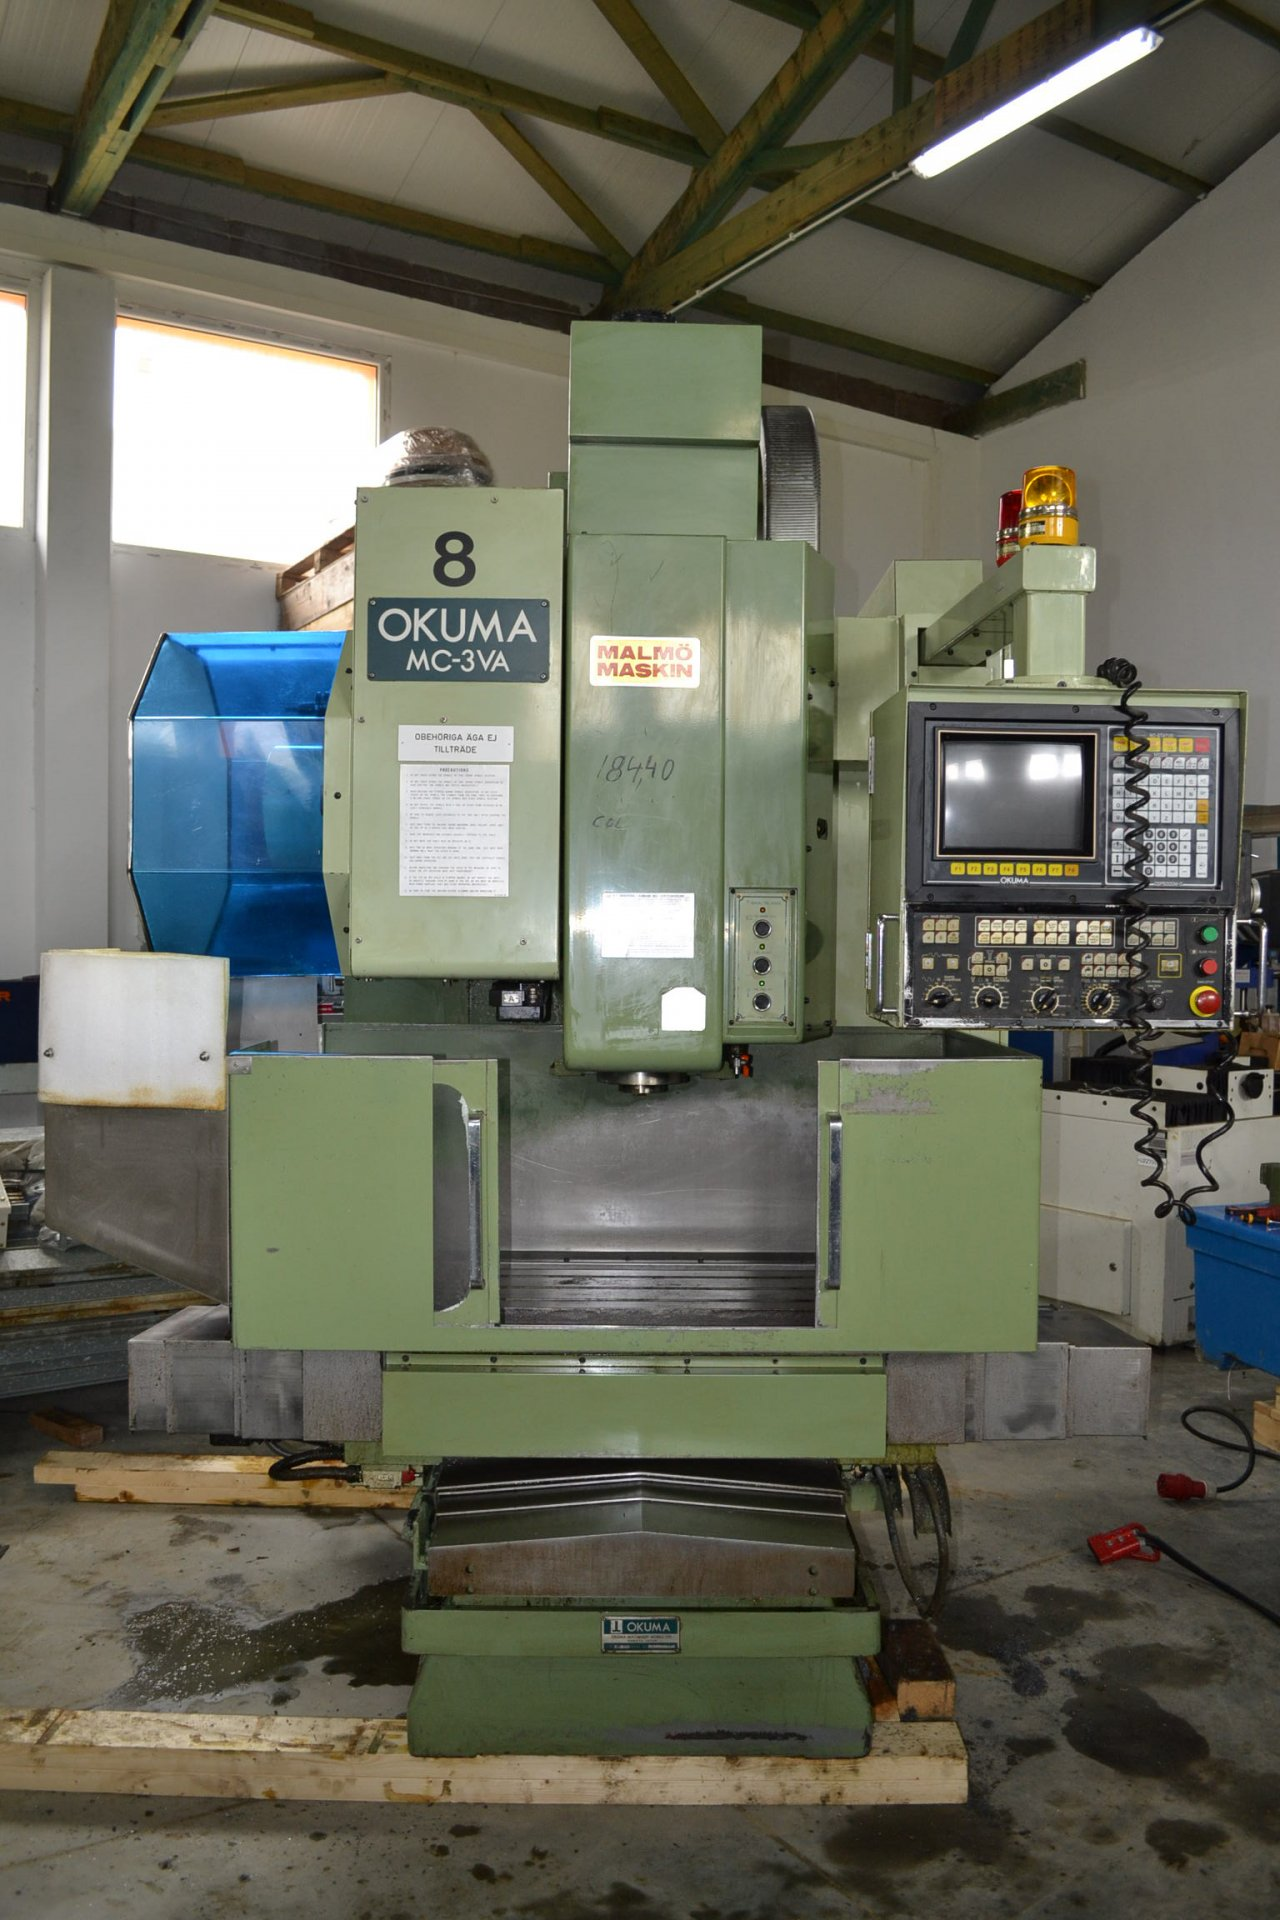 okuma milling machine